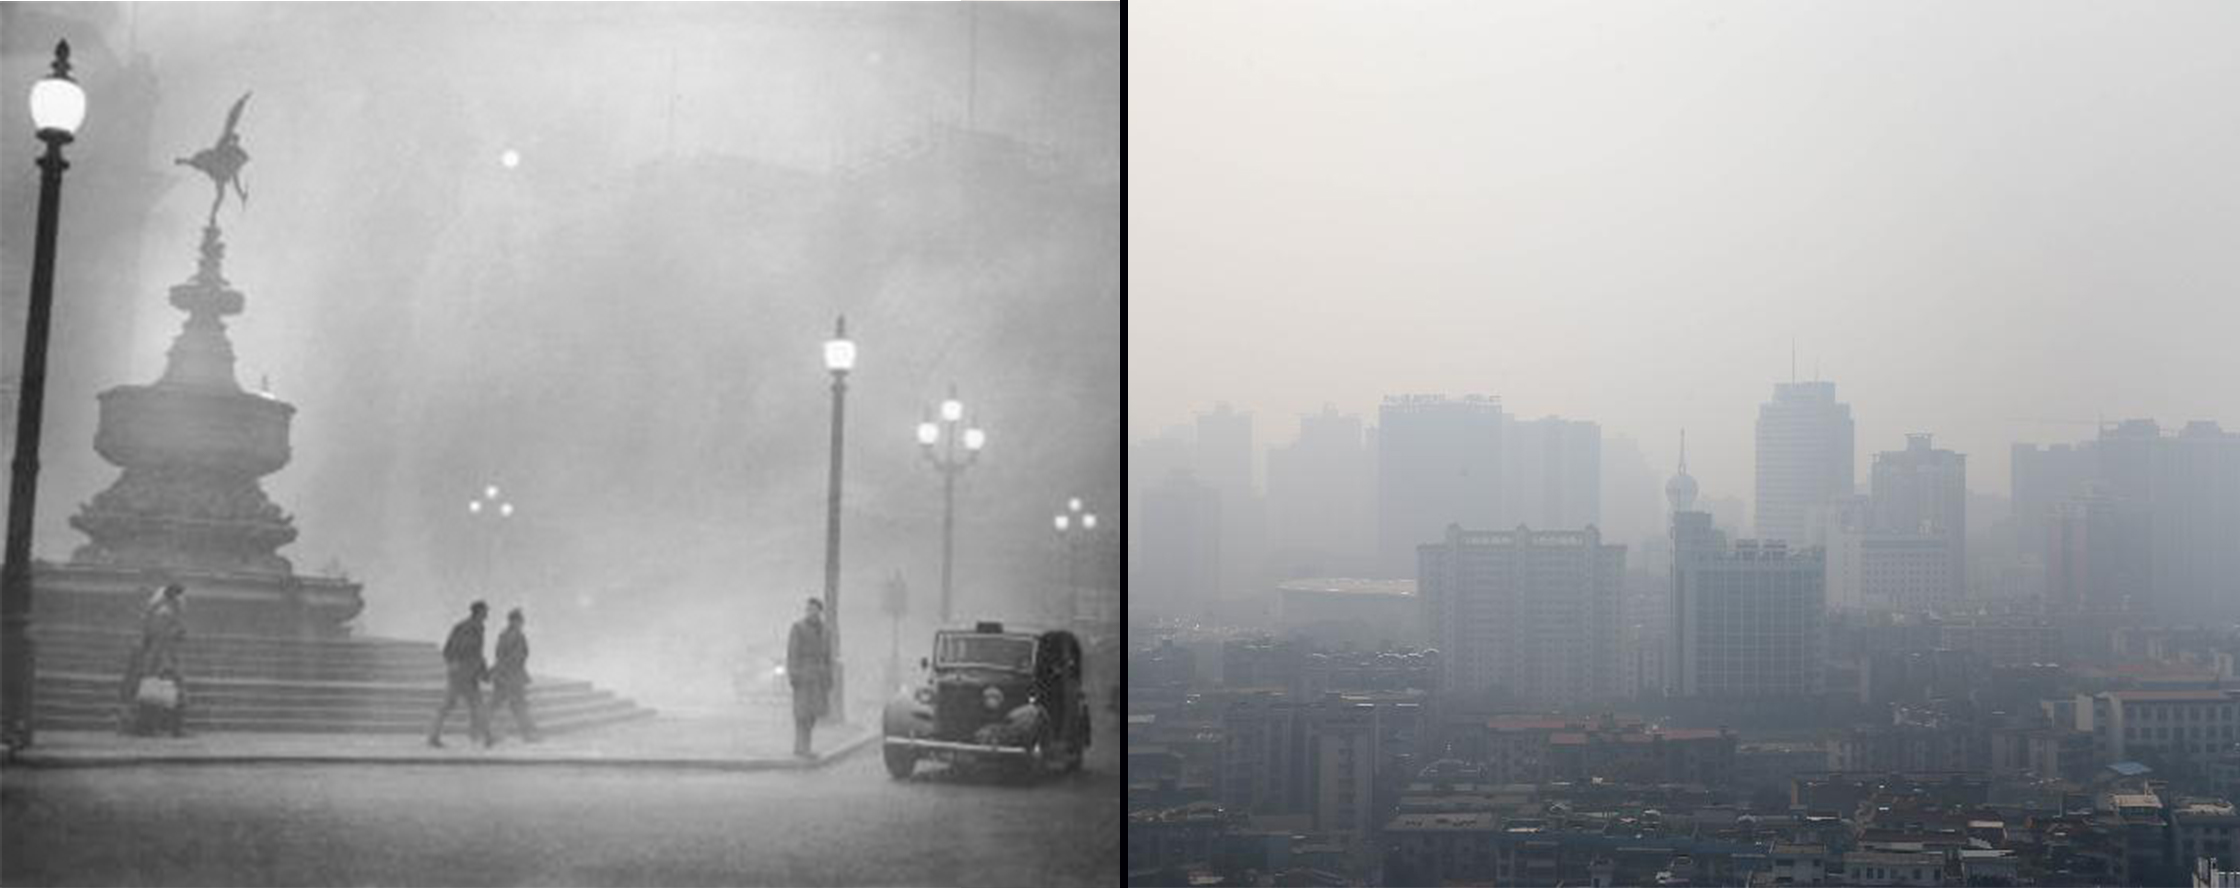 London China Airpocalypse Featured Image - Collective Responsibility